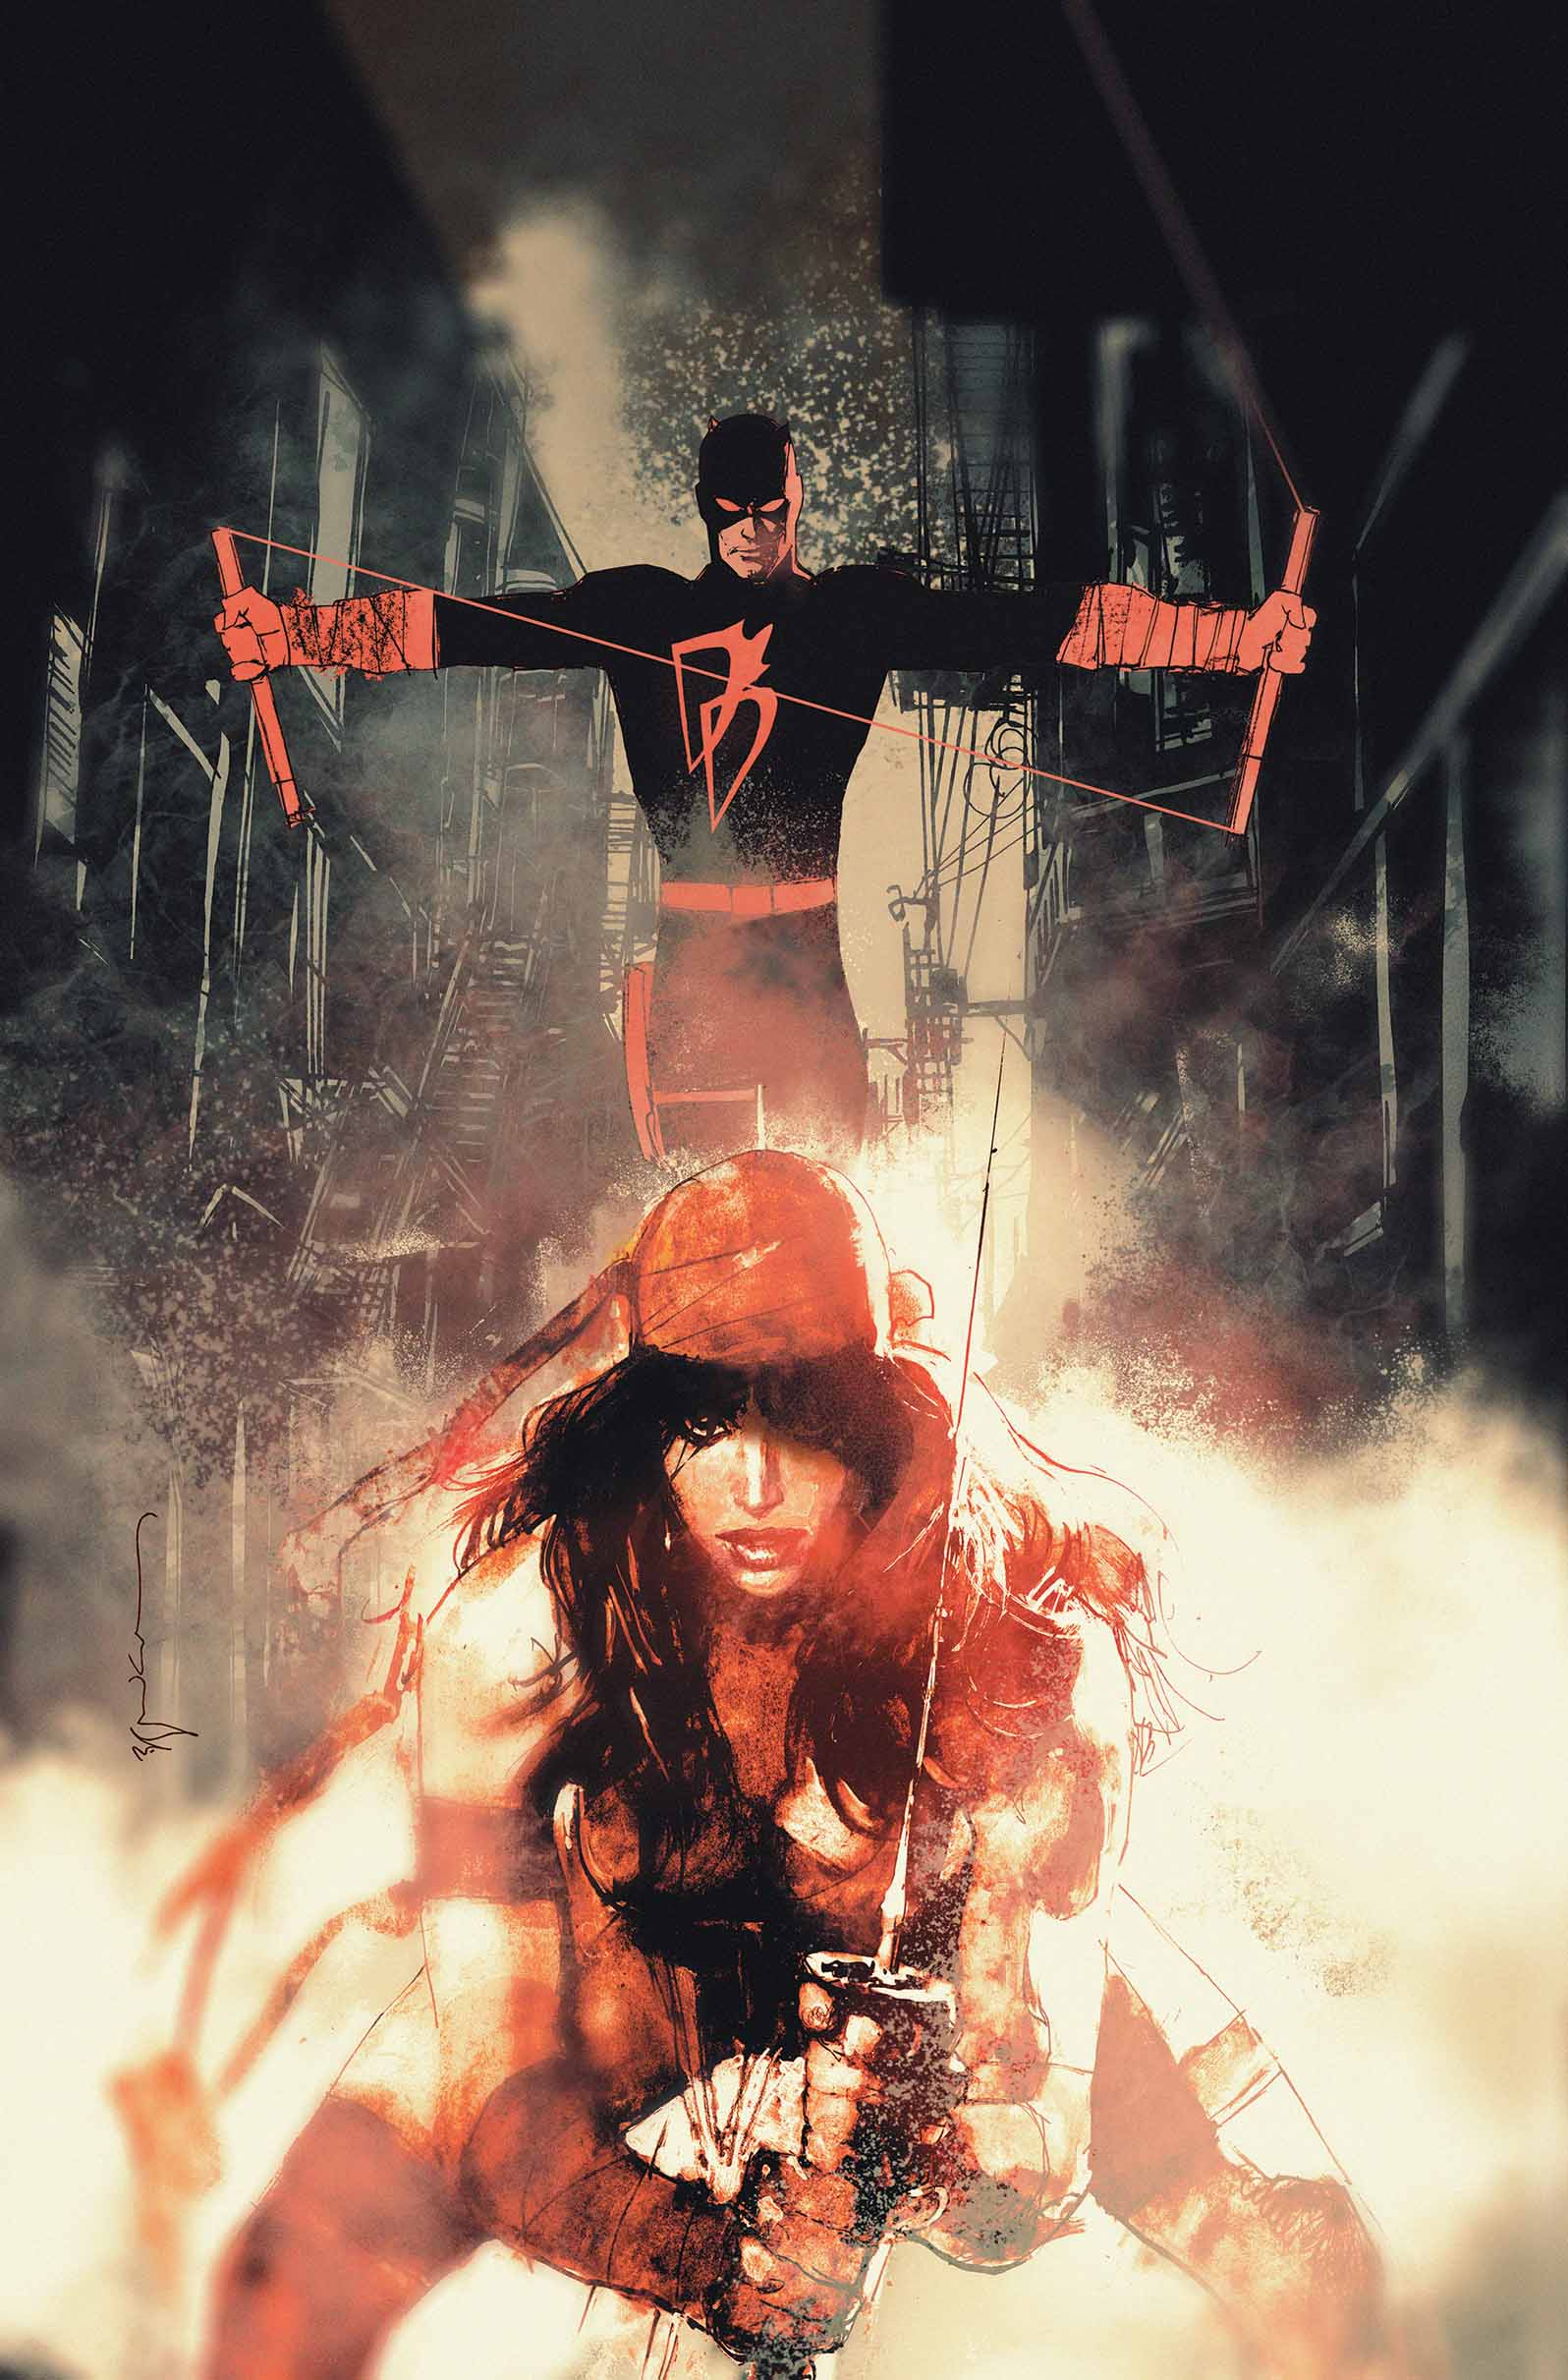 Cover by Bill Sienkiewicz